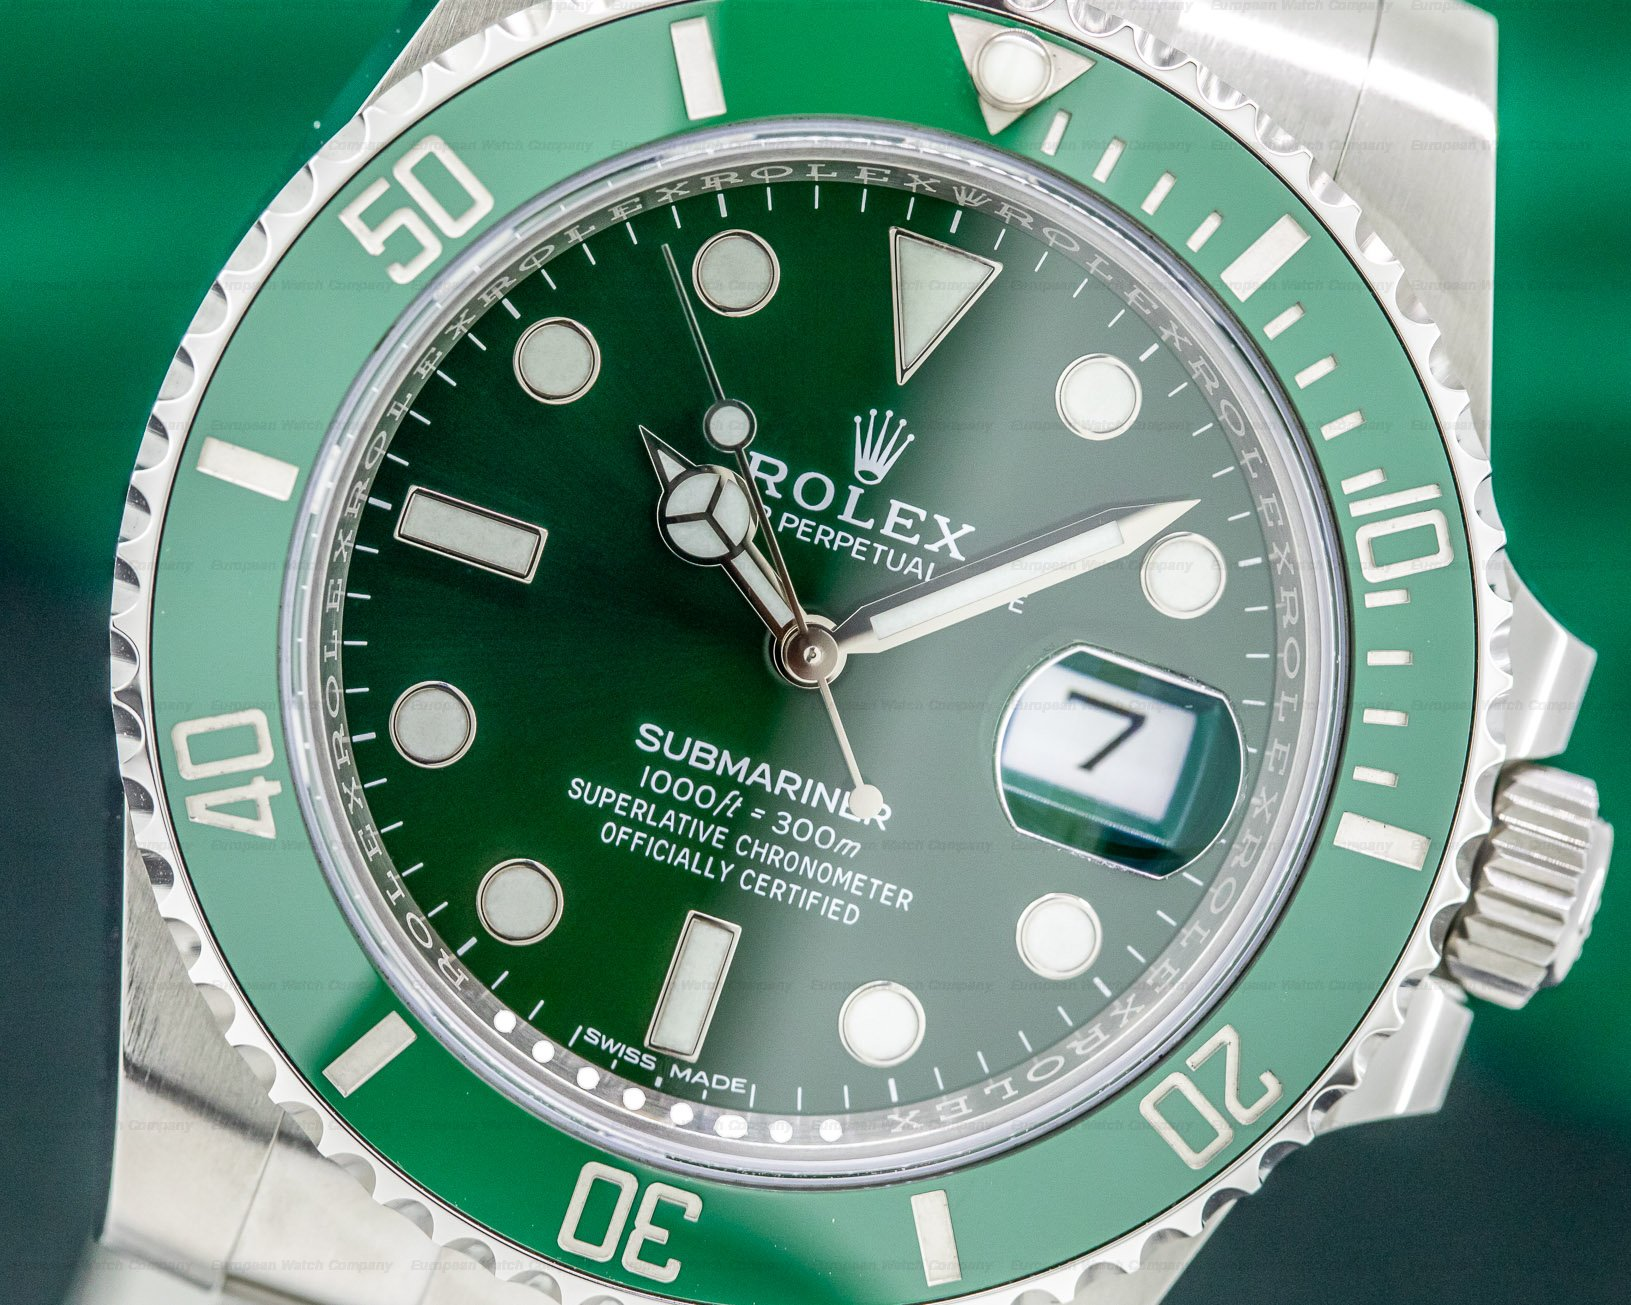 Rolex 116610LV Submariner Green Ceramic Bezel Green Dial SS